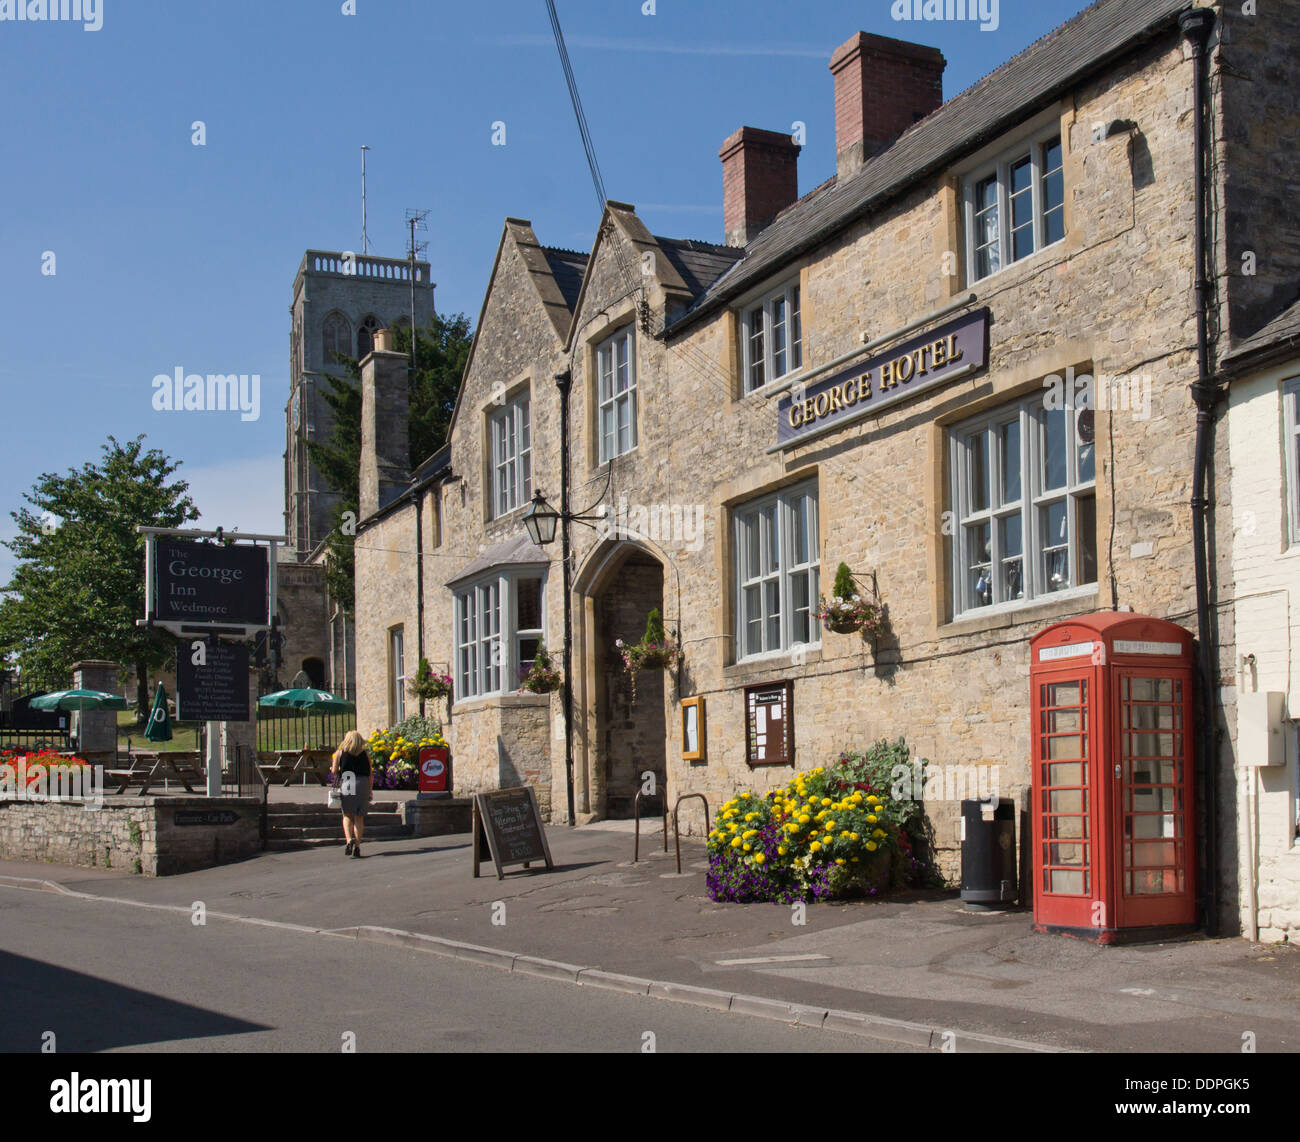 Wedmore a small town in Somerset England UK  The George Inn Pub - Stock Image